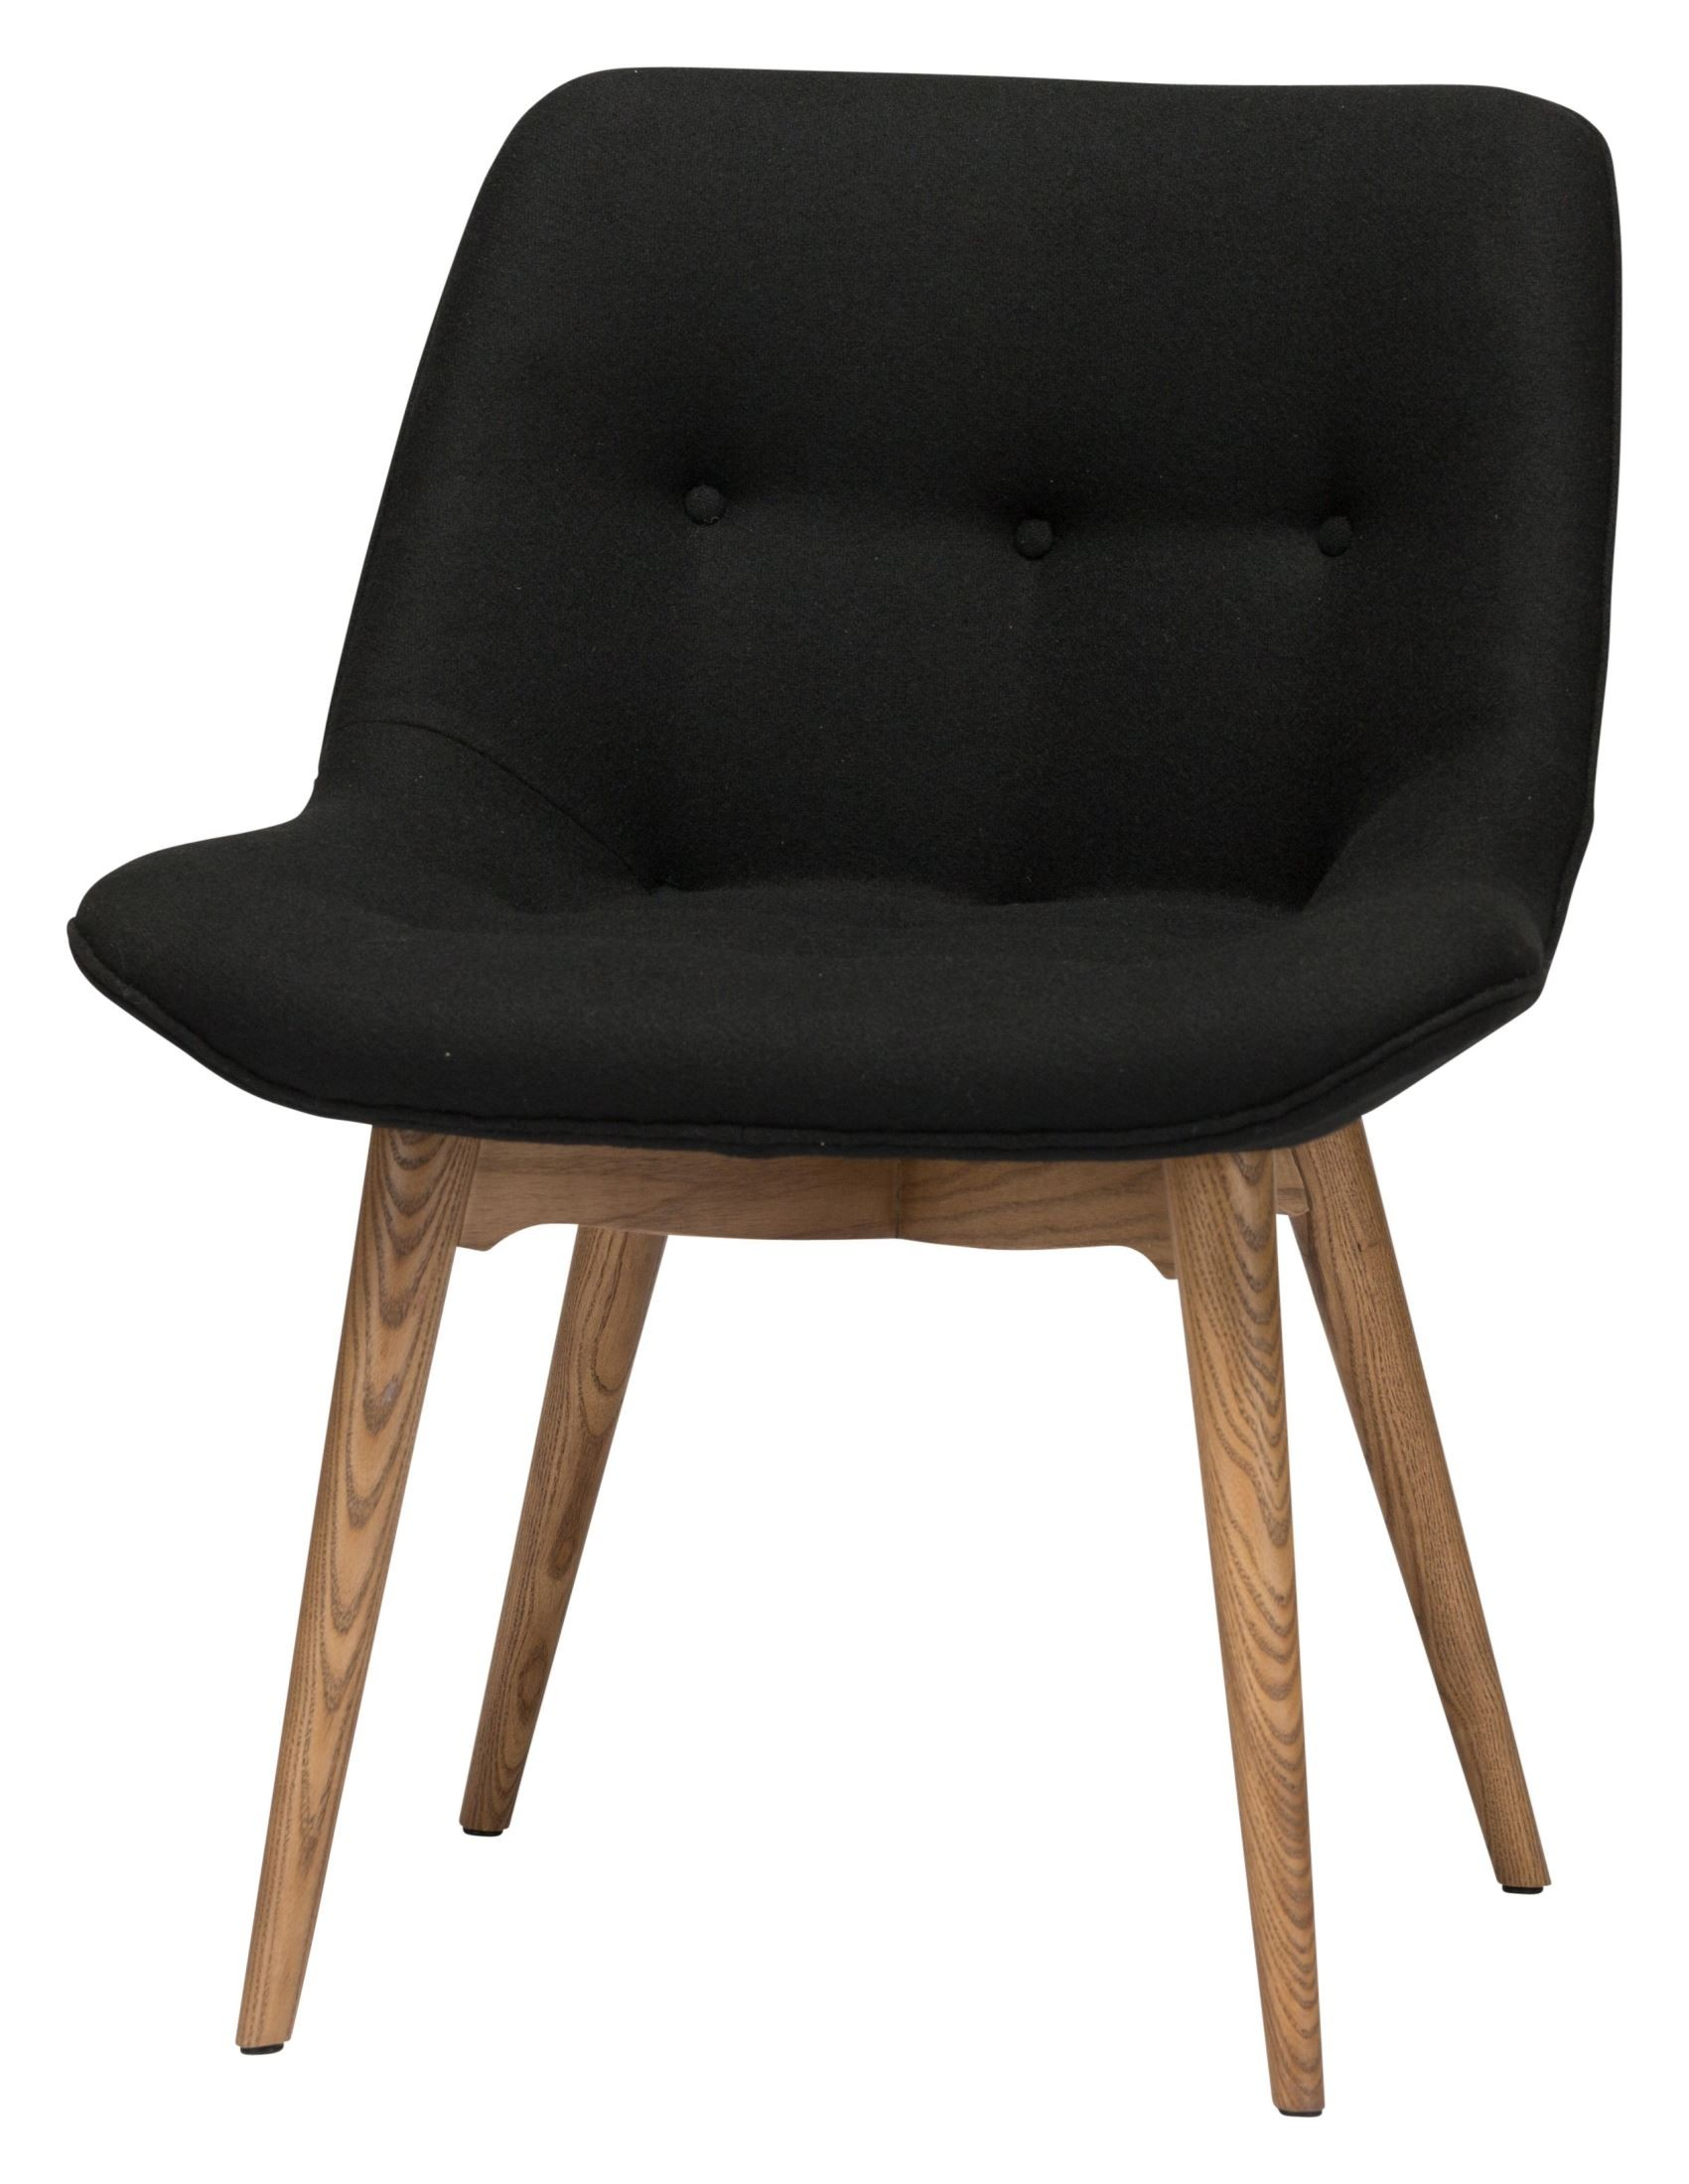 Dining Chairs Black Brie Black Fabric Dining Chair Hgem643 Nuevo